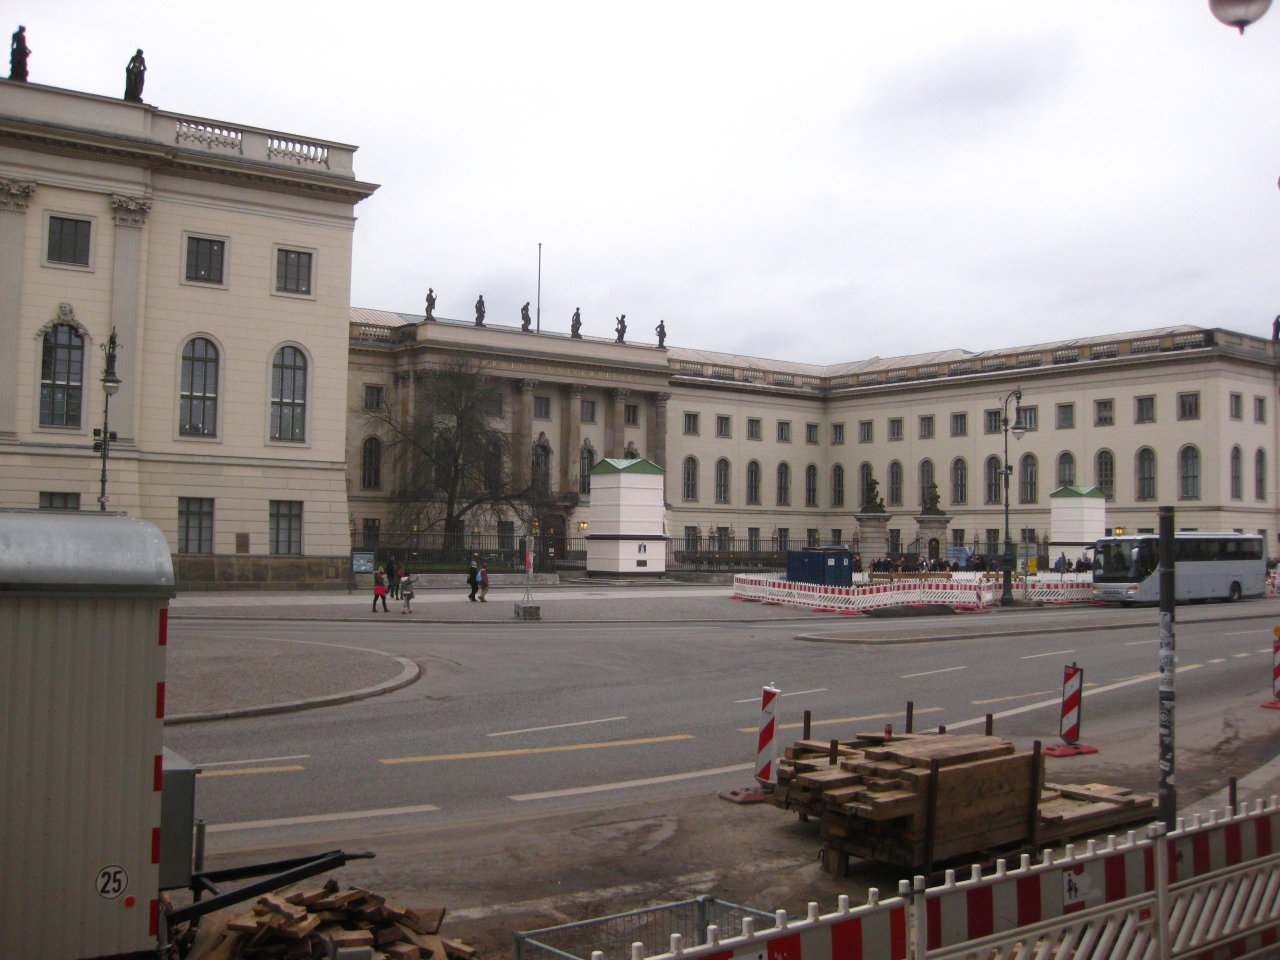 Berlin Construction Humboldt University